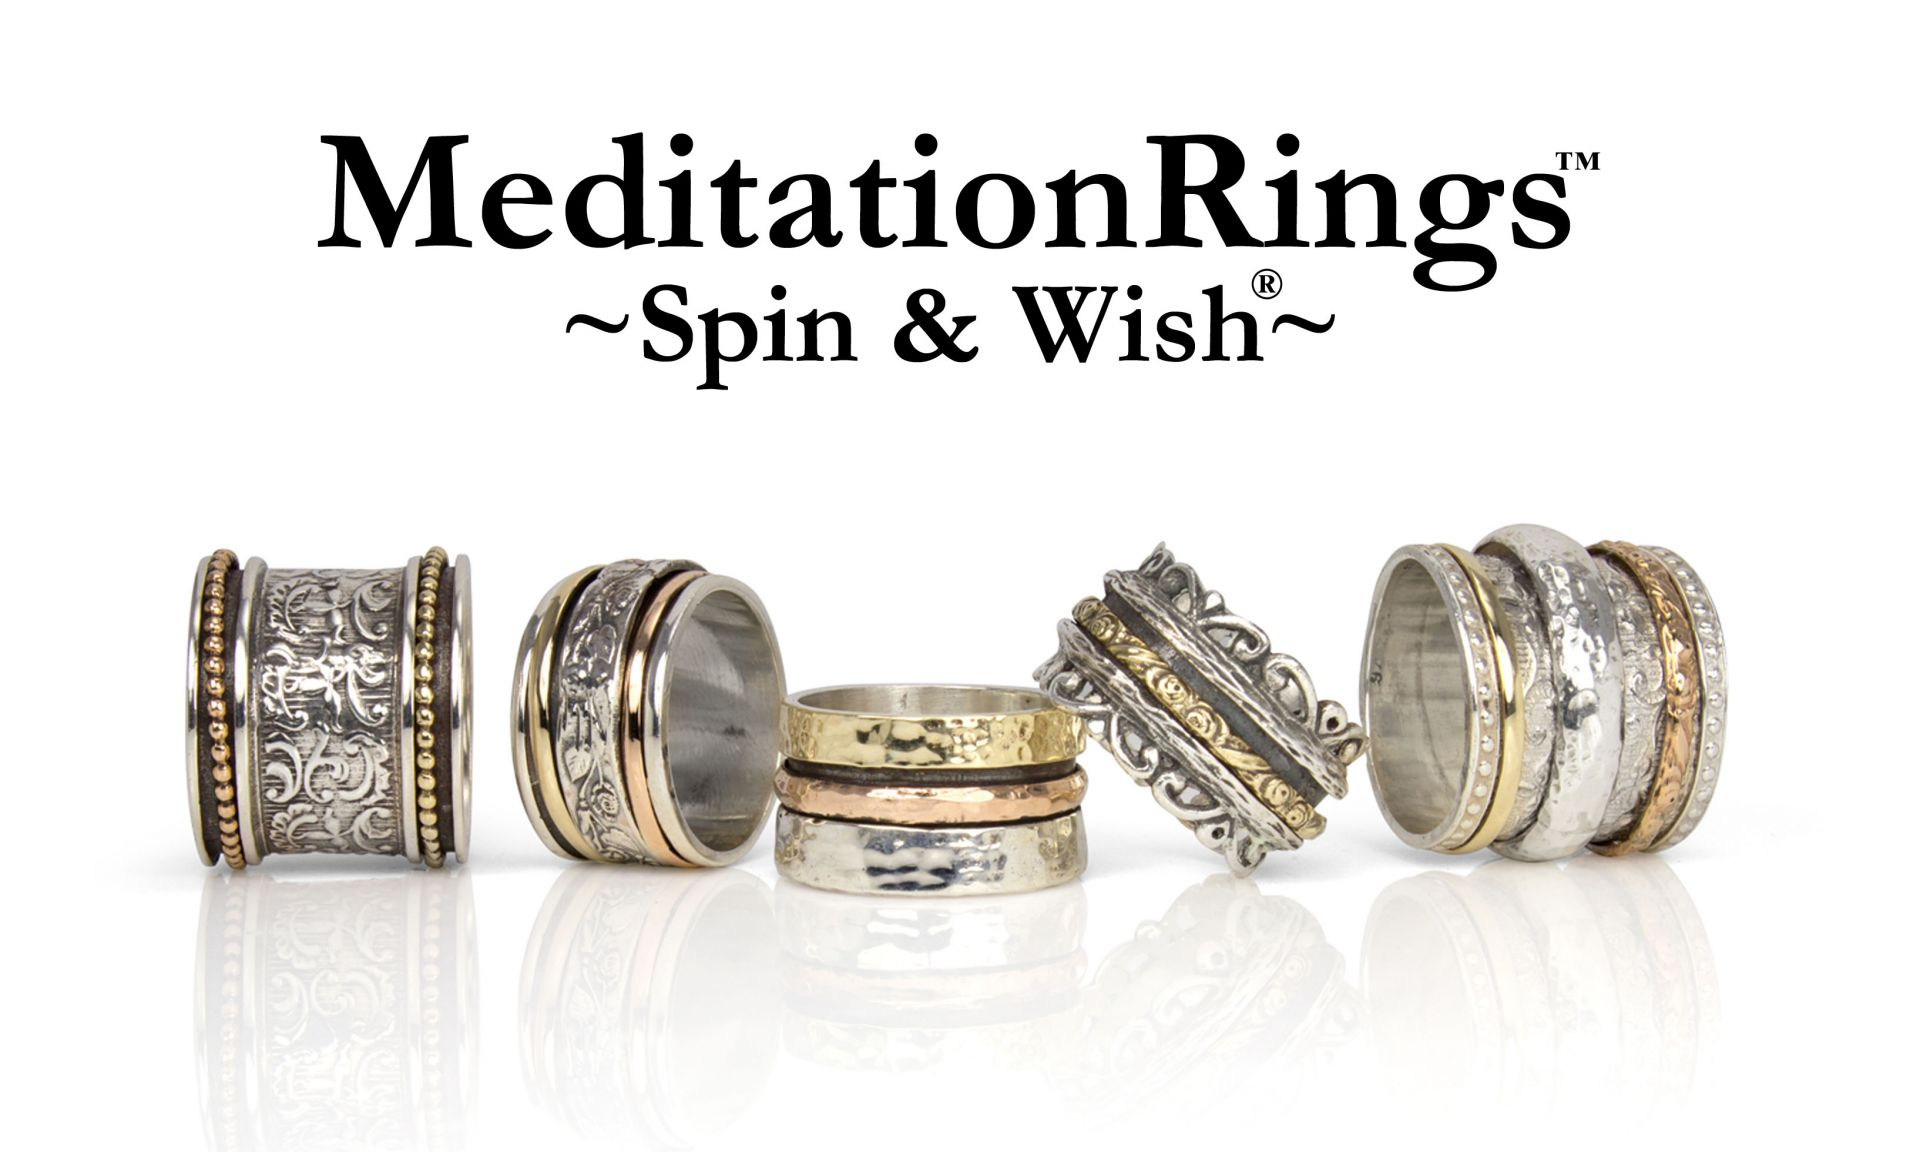 Meditation Rings - Spin & Wish